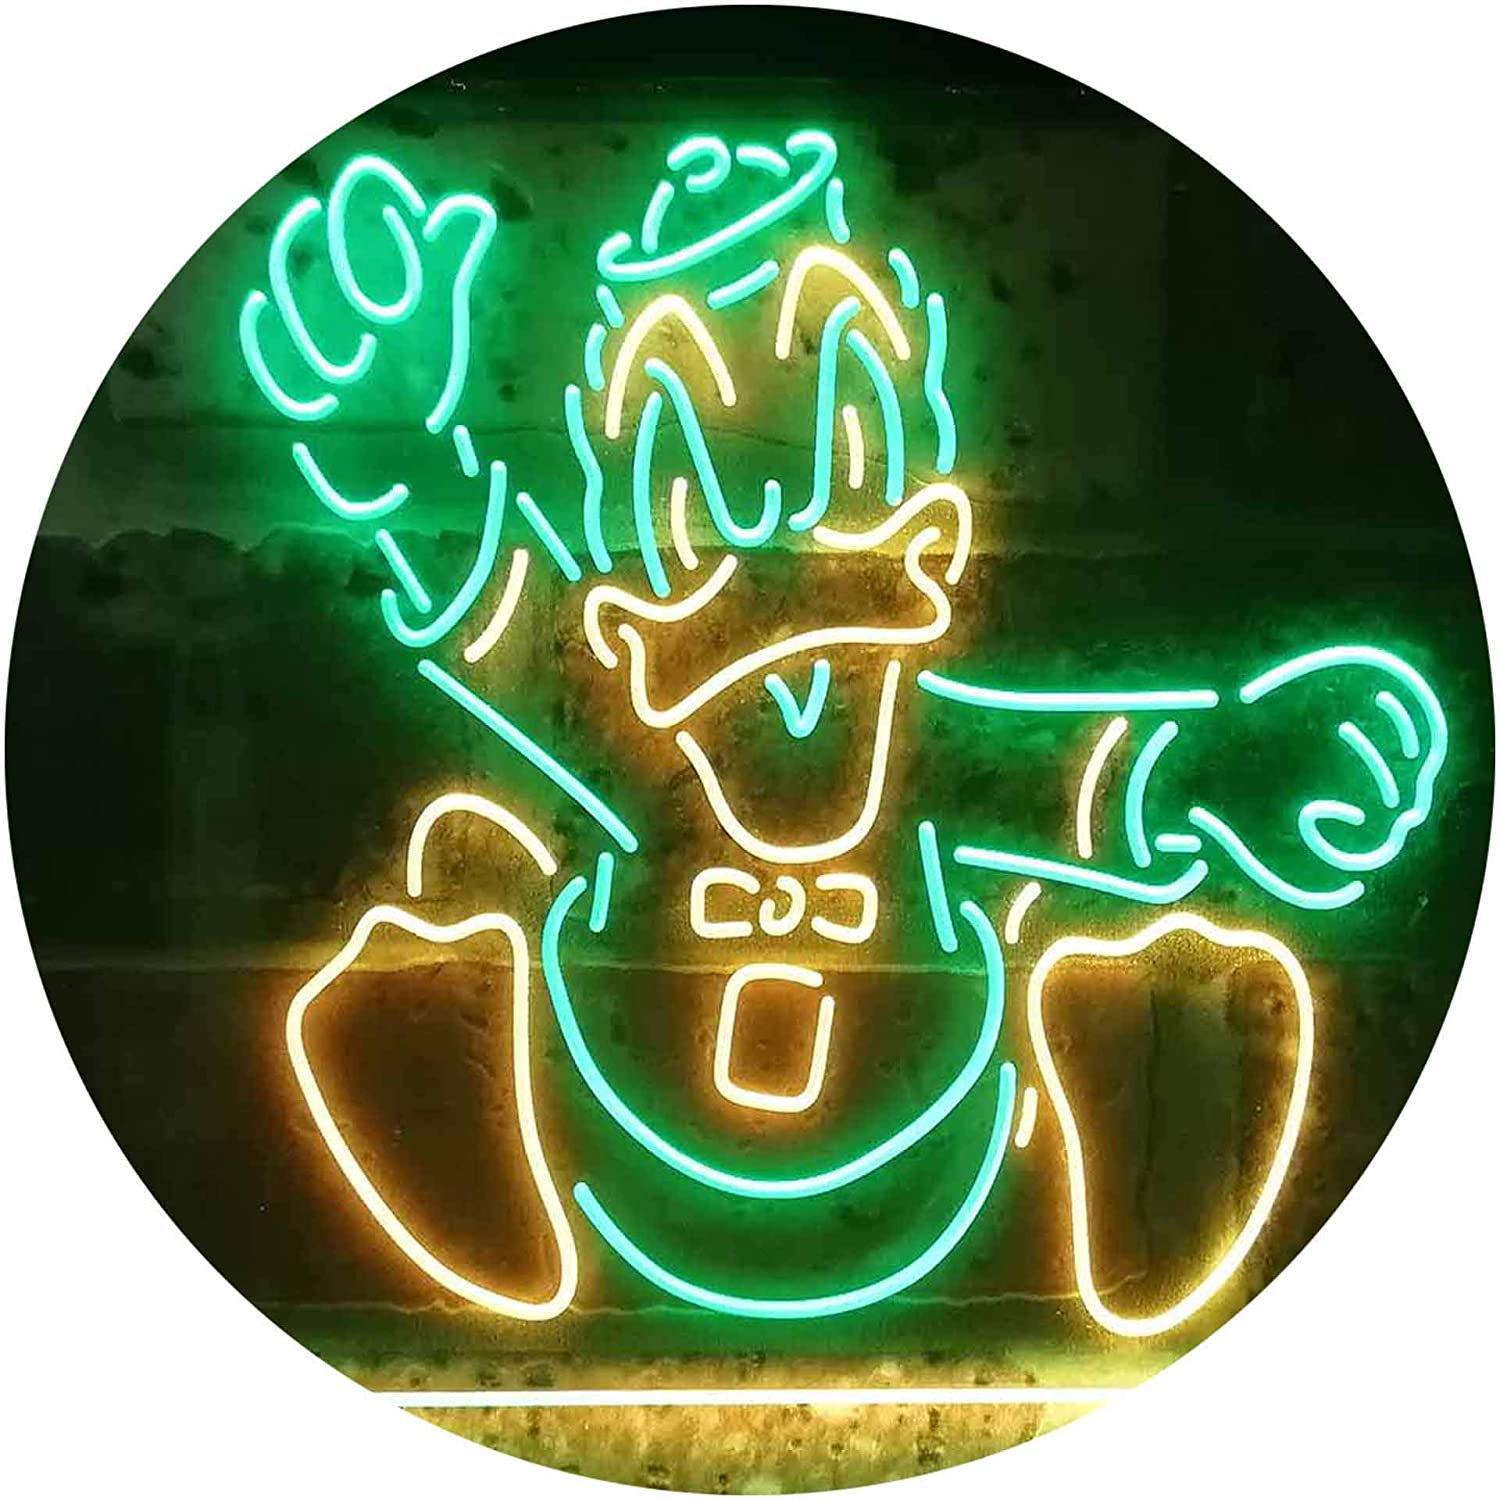 TeroLED Oregon Ducks Alternate Colorful LED Neon Sign Green and Yellow w16 x h12